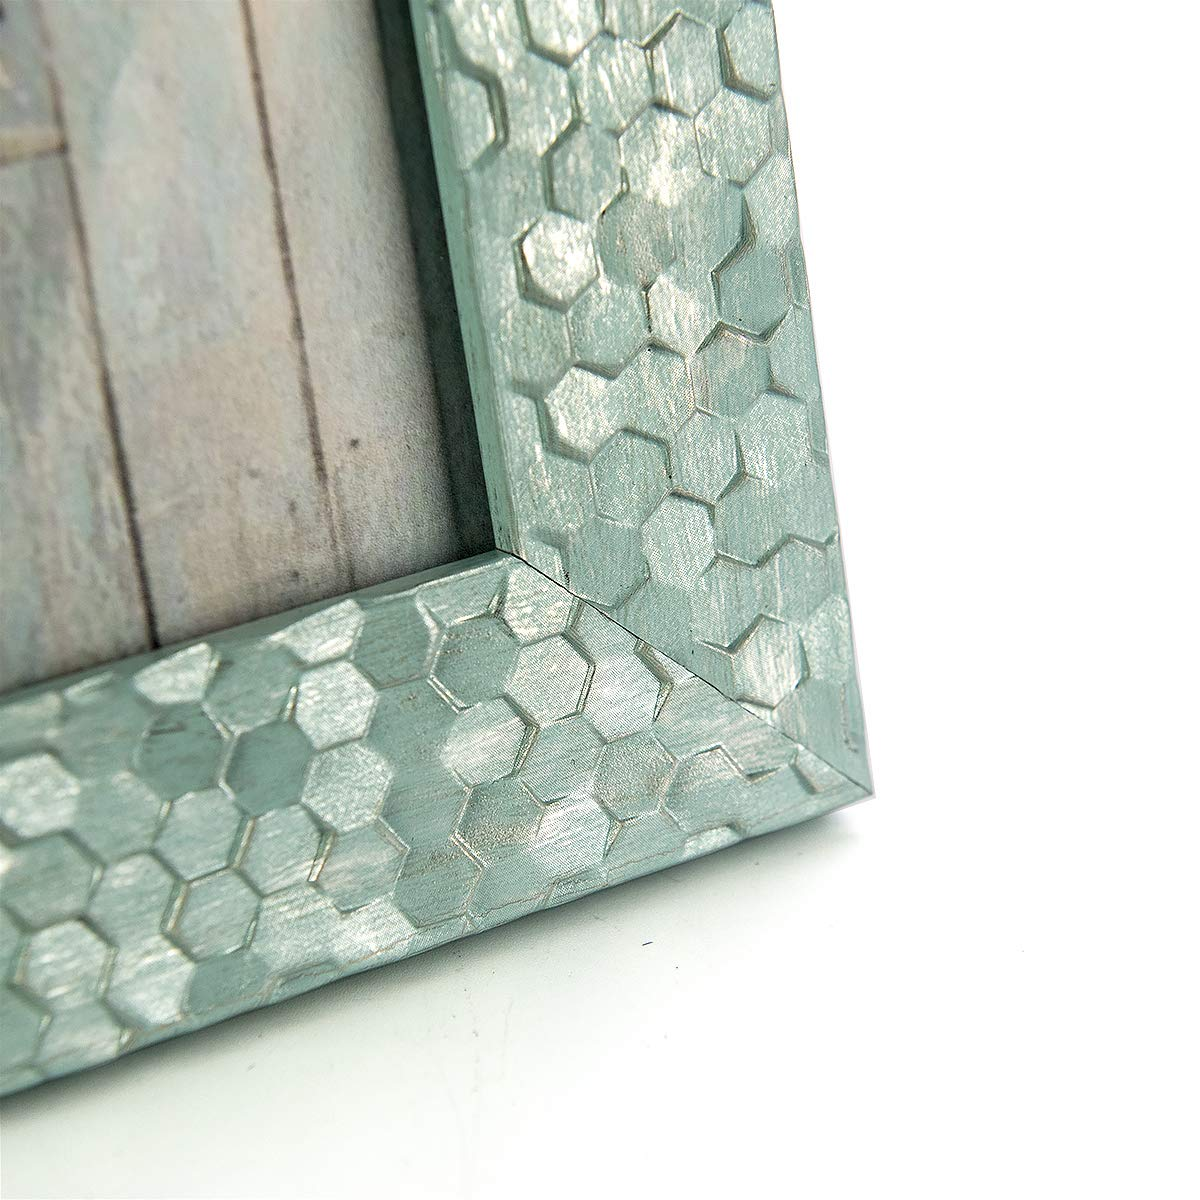 Buy Homeme 5x7 Picture Frames Rustic Photo Frame Set With High Definition Glass For Wall Mount Table Top Display Set Of 3 5 X7 3p Style7 Online At Low Prices In India